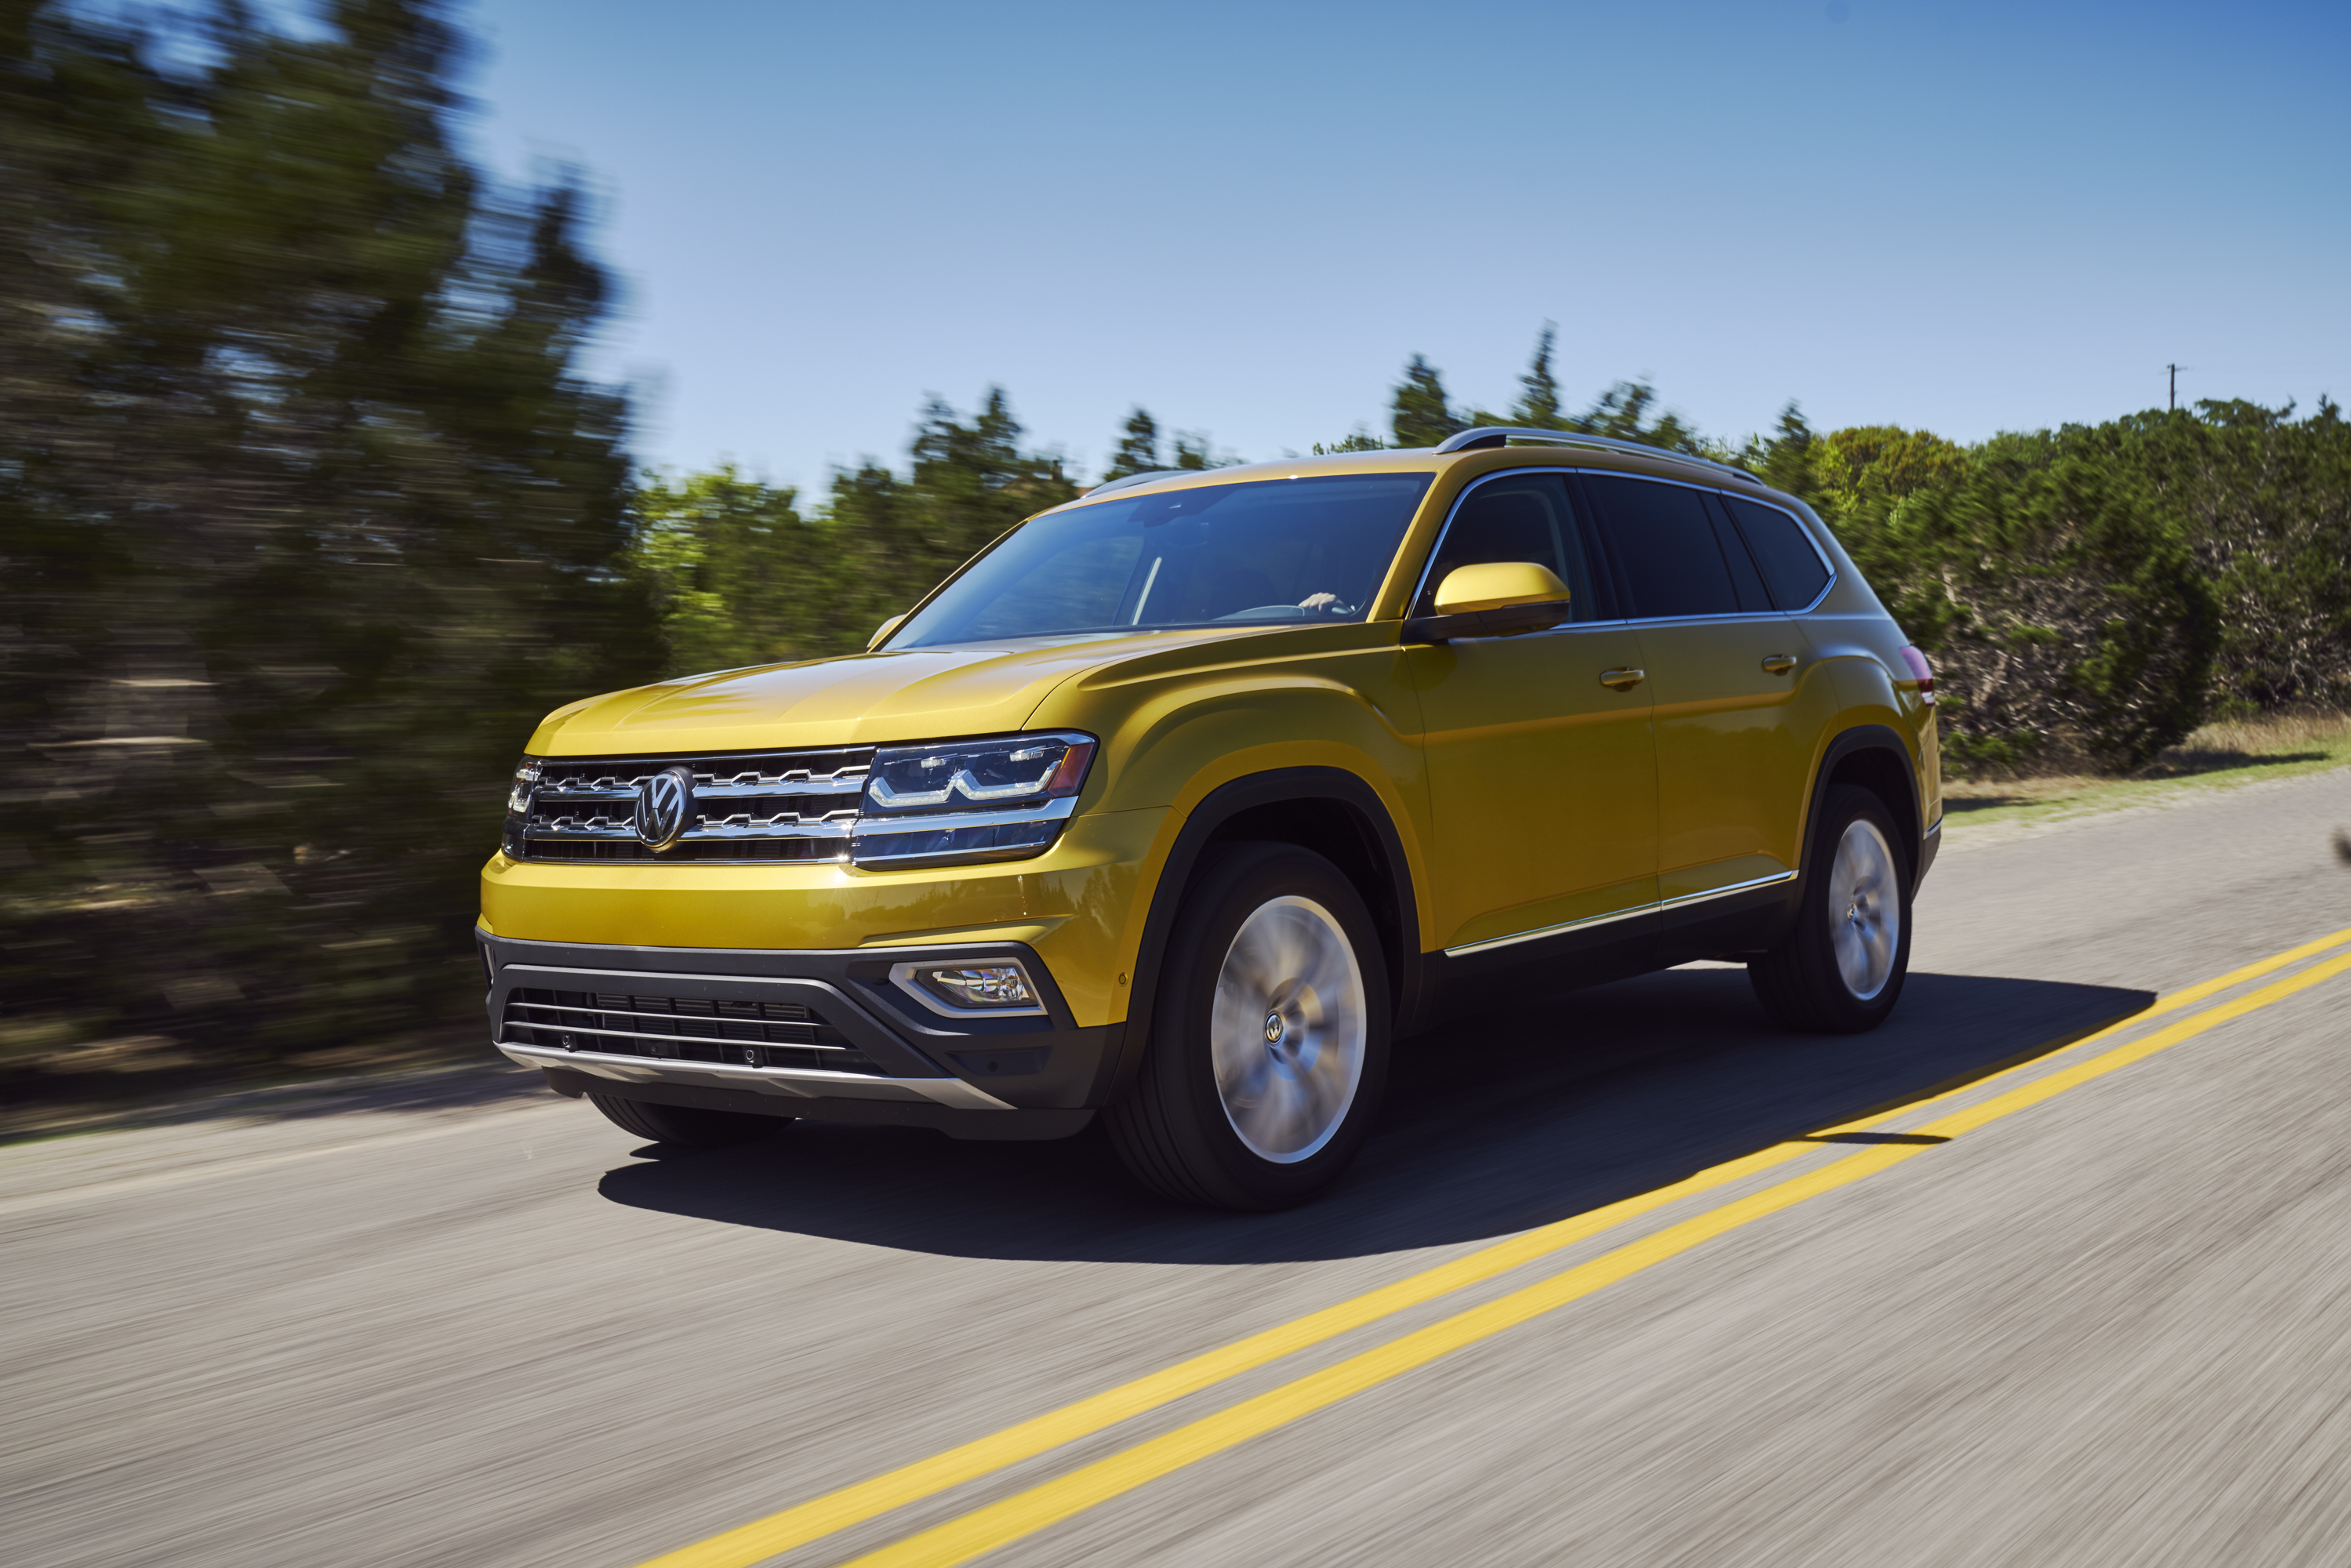 Best 3rd Row Suv 2017 >> Volkswagen Atlas Named Cars Com S Best 3 Row Suv Of 2017